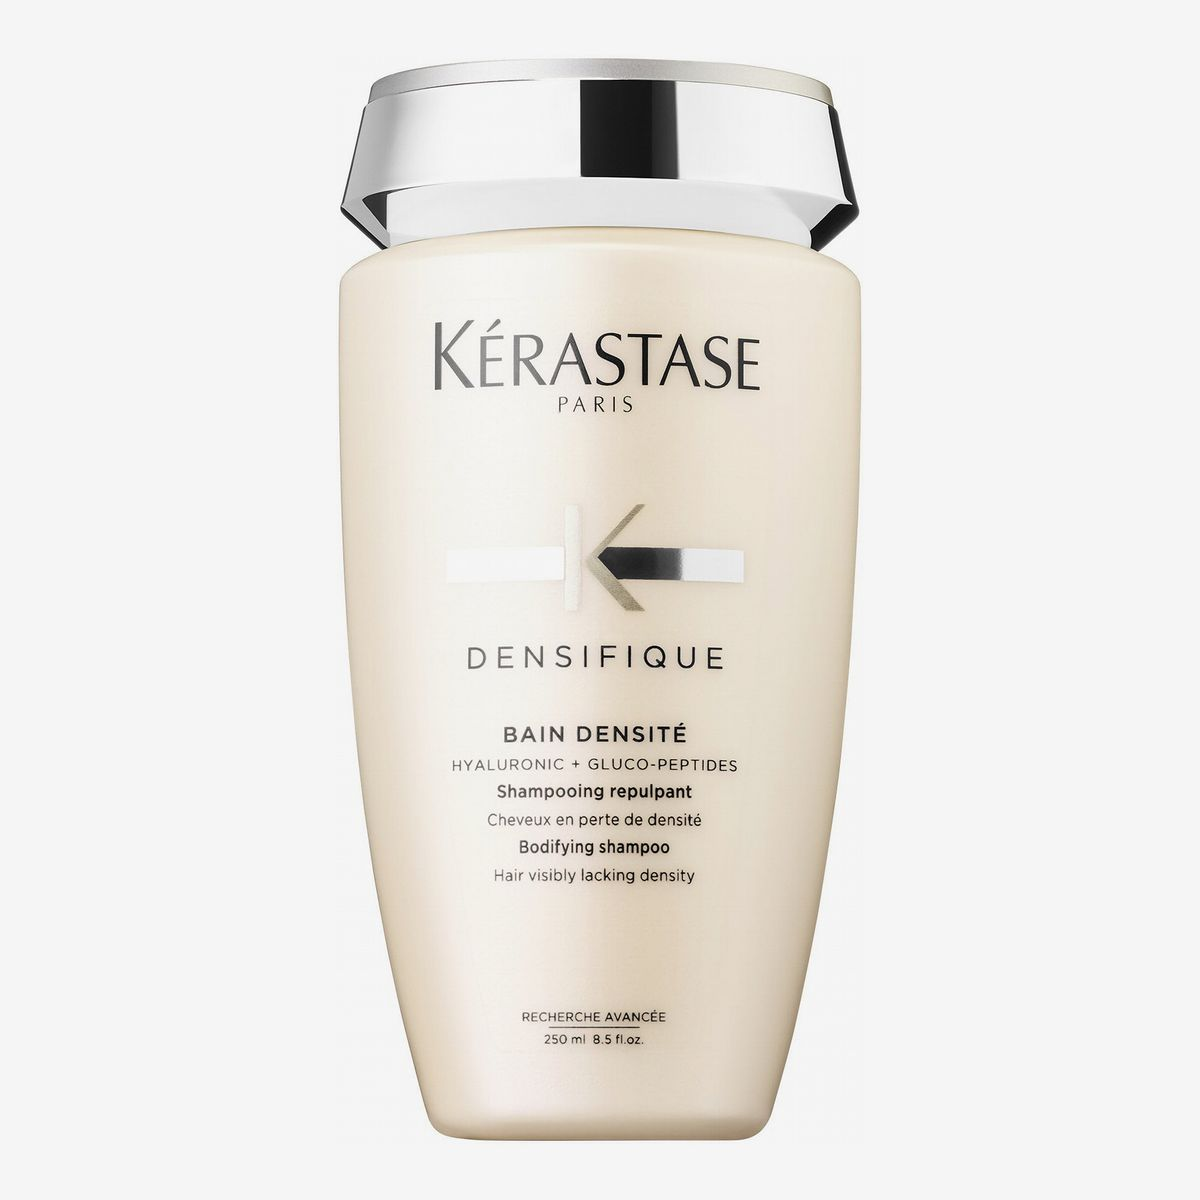 15 Best Shampoos For Fine Hair 2020 The Strategist New York Magazine